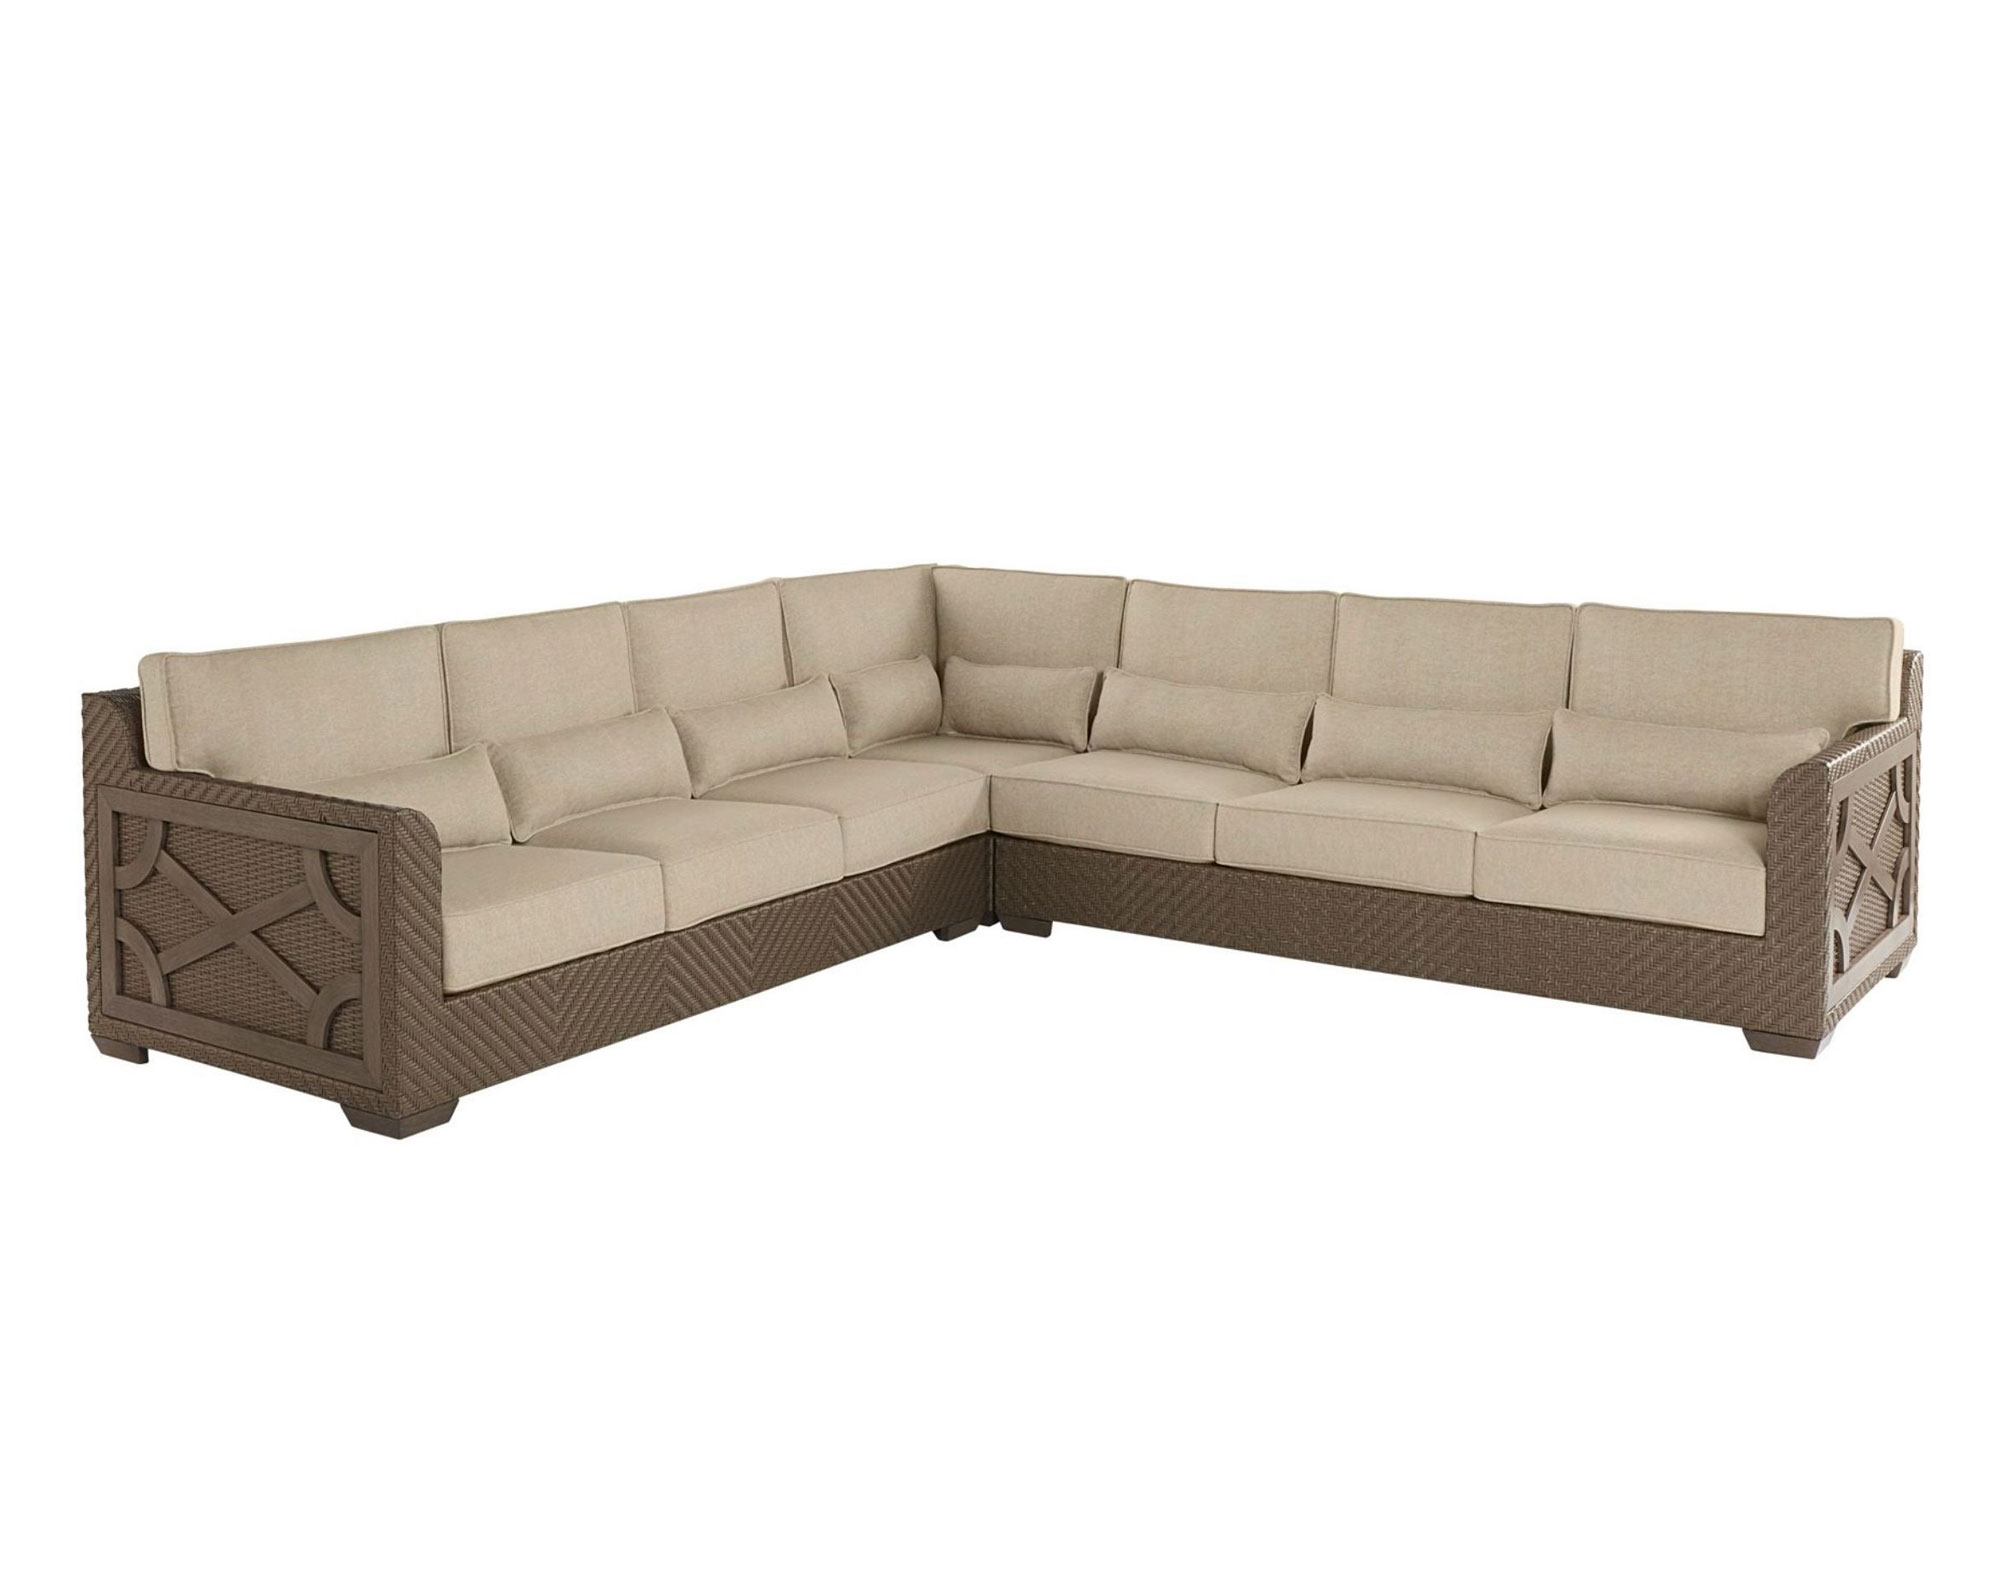 Prime Arch Salvage Sweet Grass Florence Wicker Sofas And Sectionals Unemploymentrelief Wooden Chair Designs For Living Room Unemploymentrelieforg